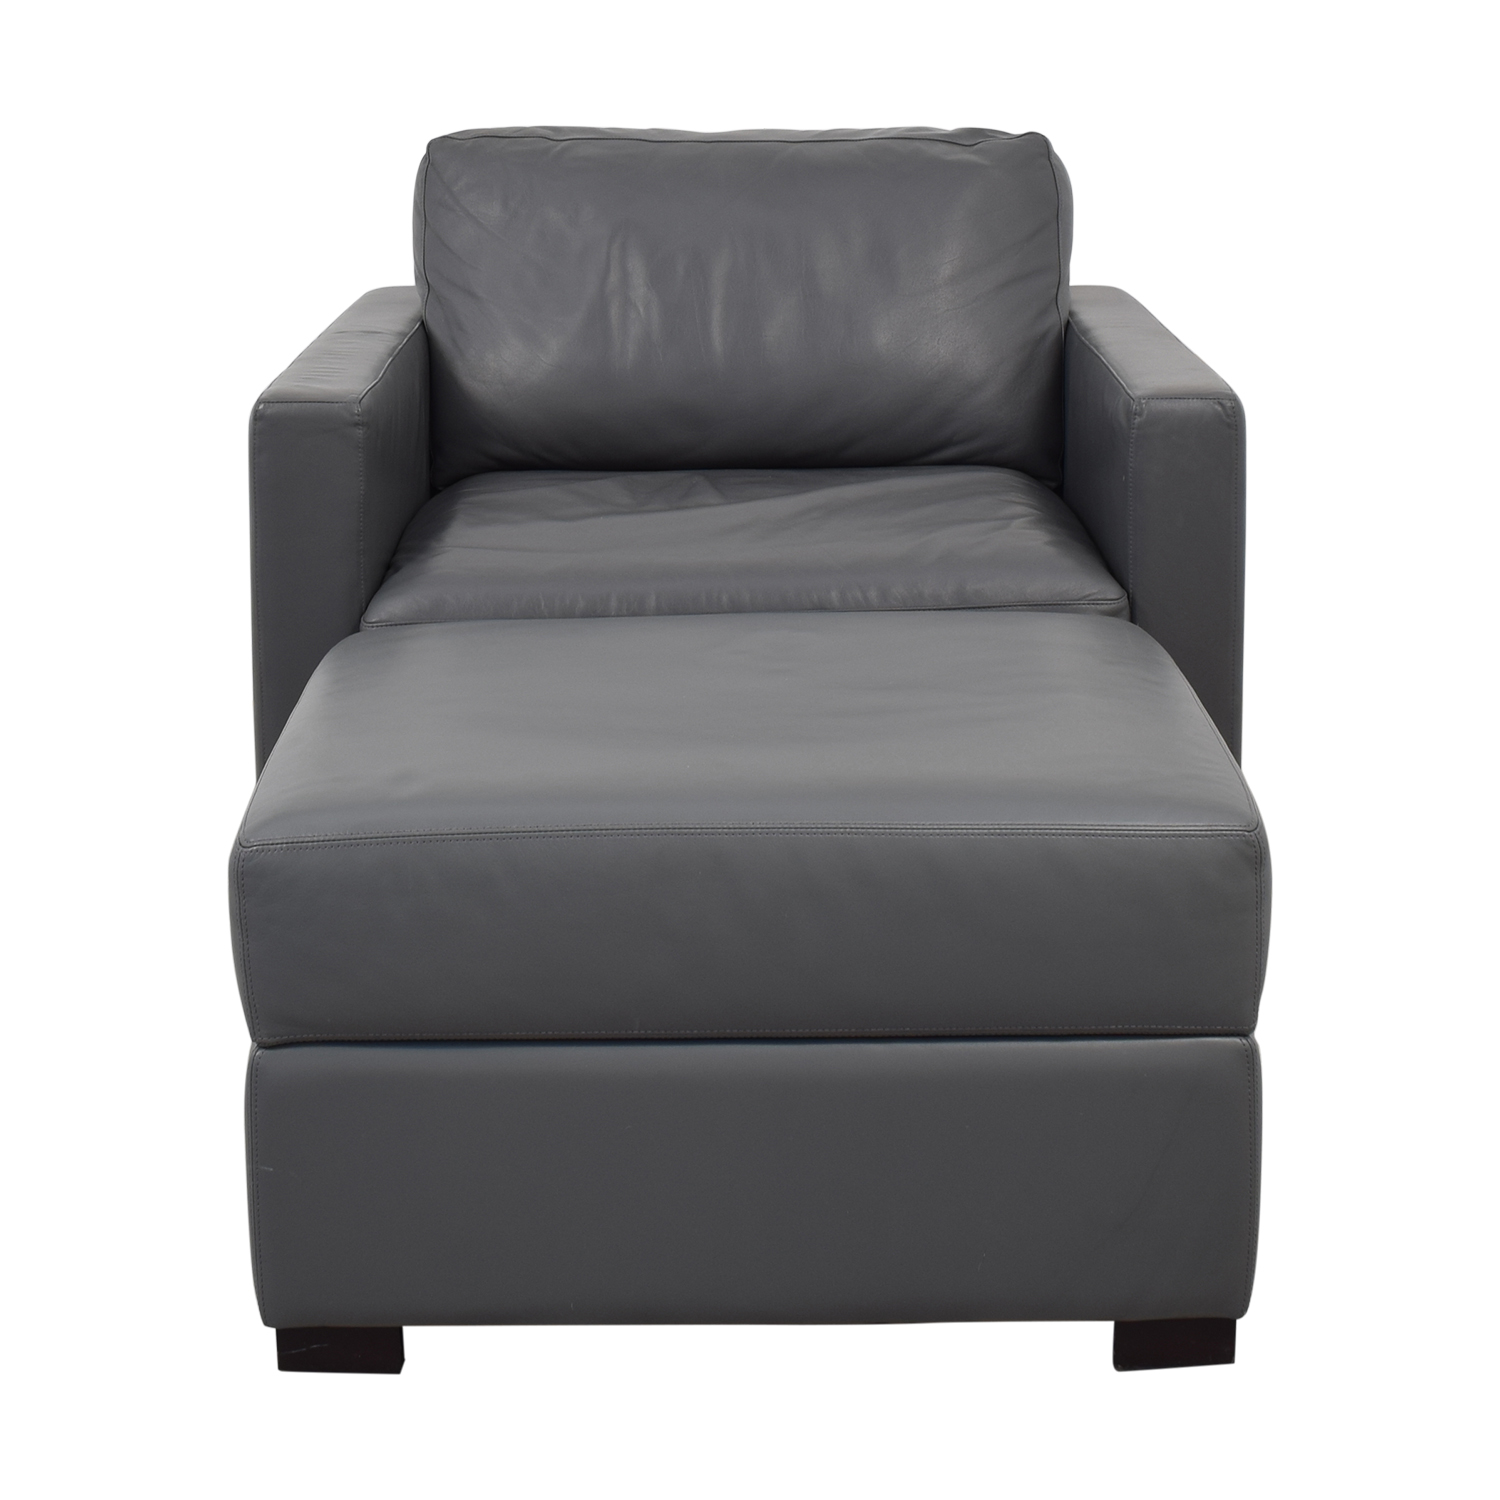 shop Design Within Reach Design Within Reach Grey Accent Chair and Ottoman online